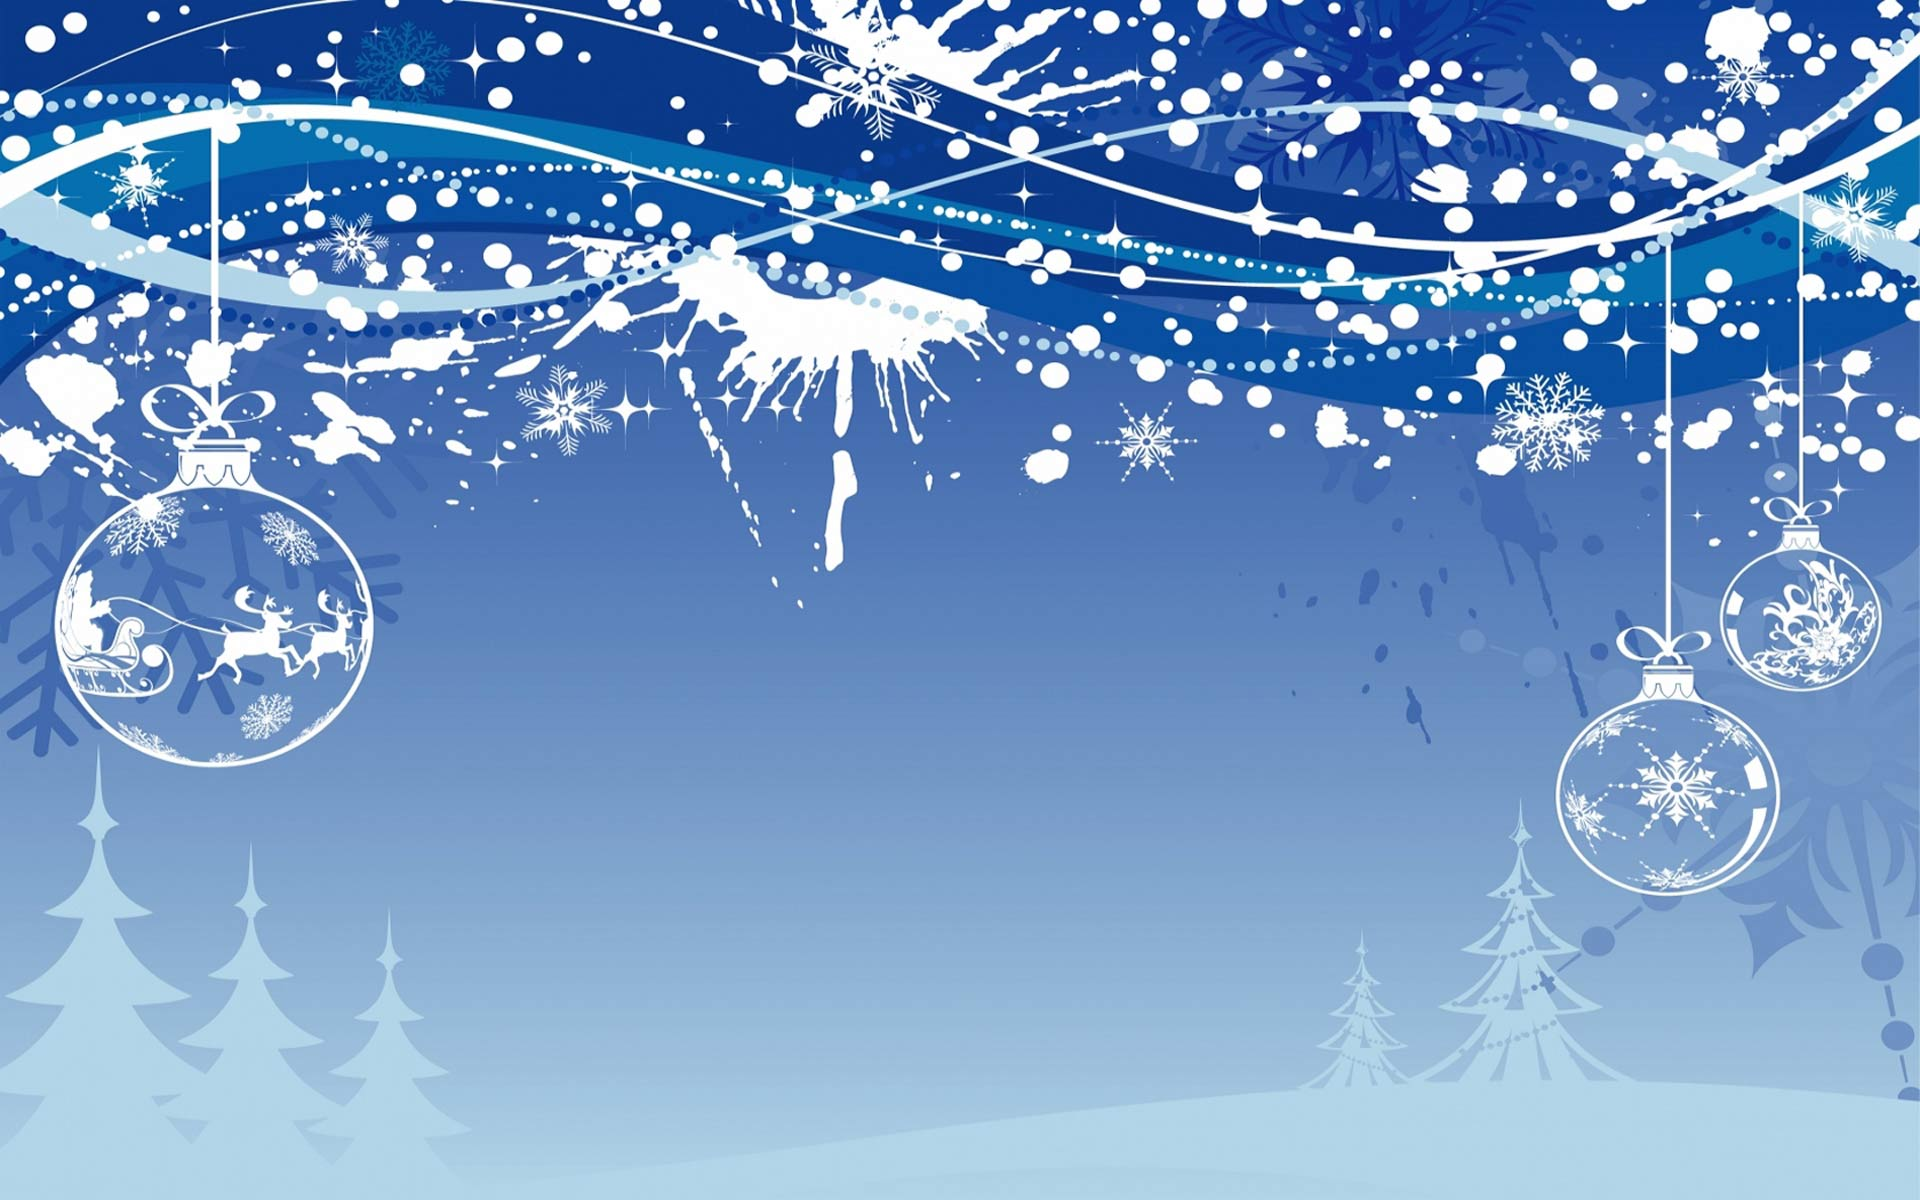 Widescreen Christmas Wallpaper